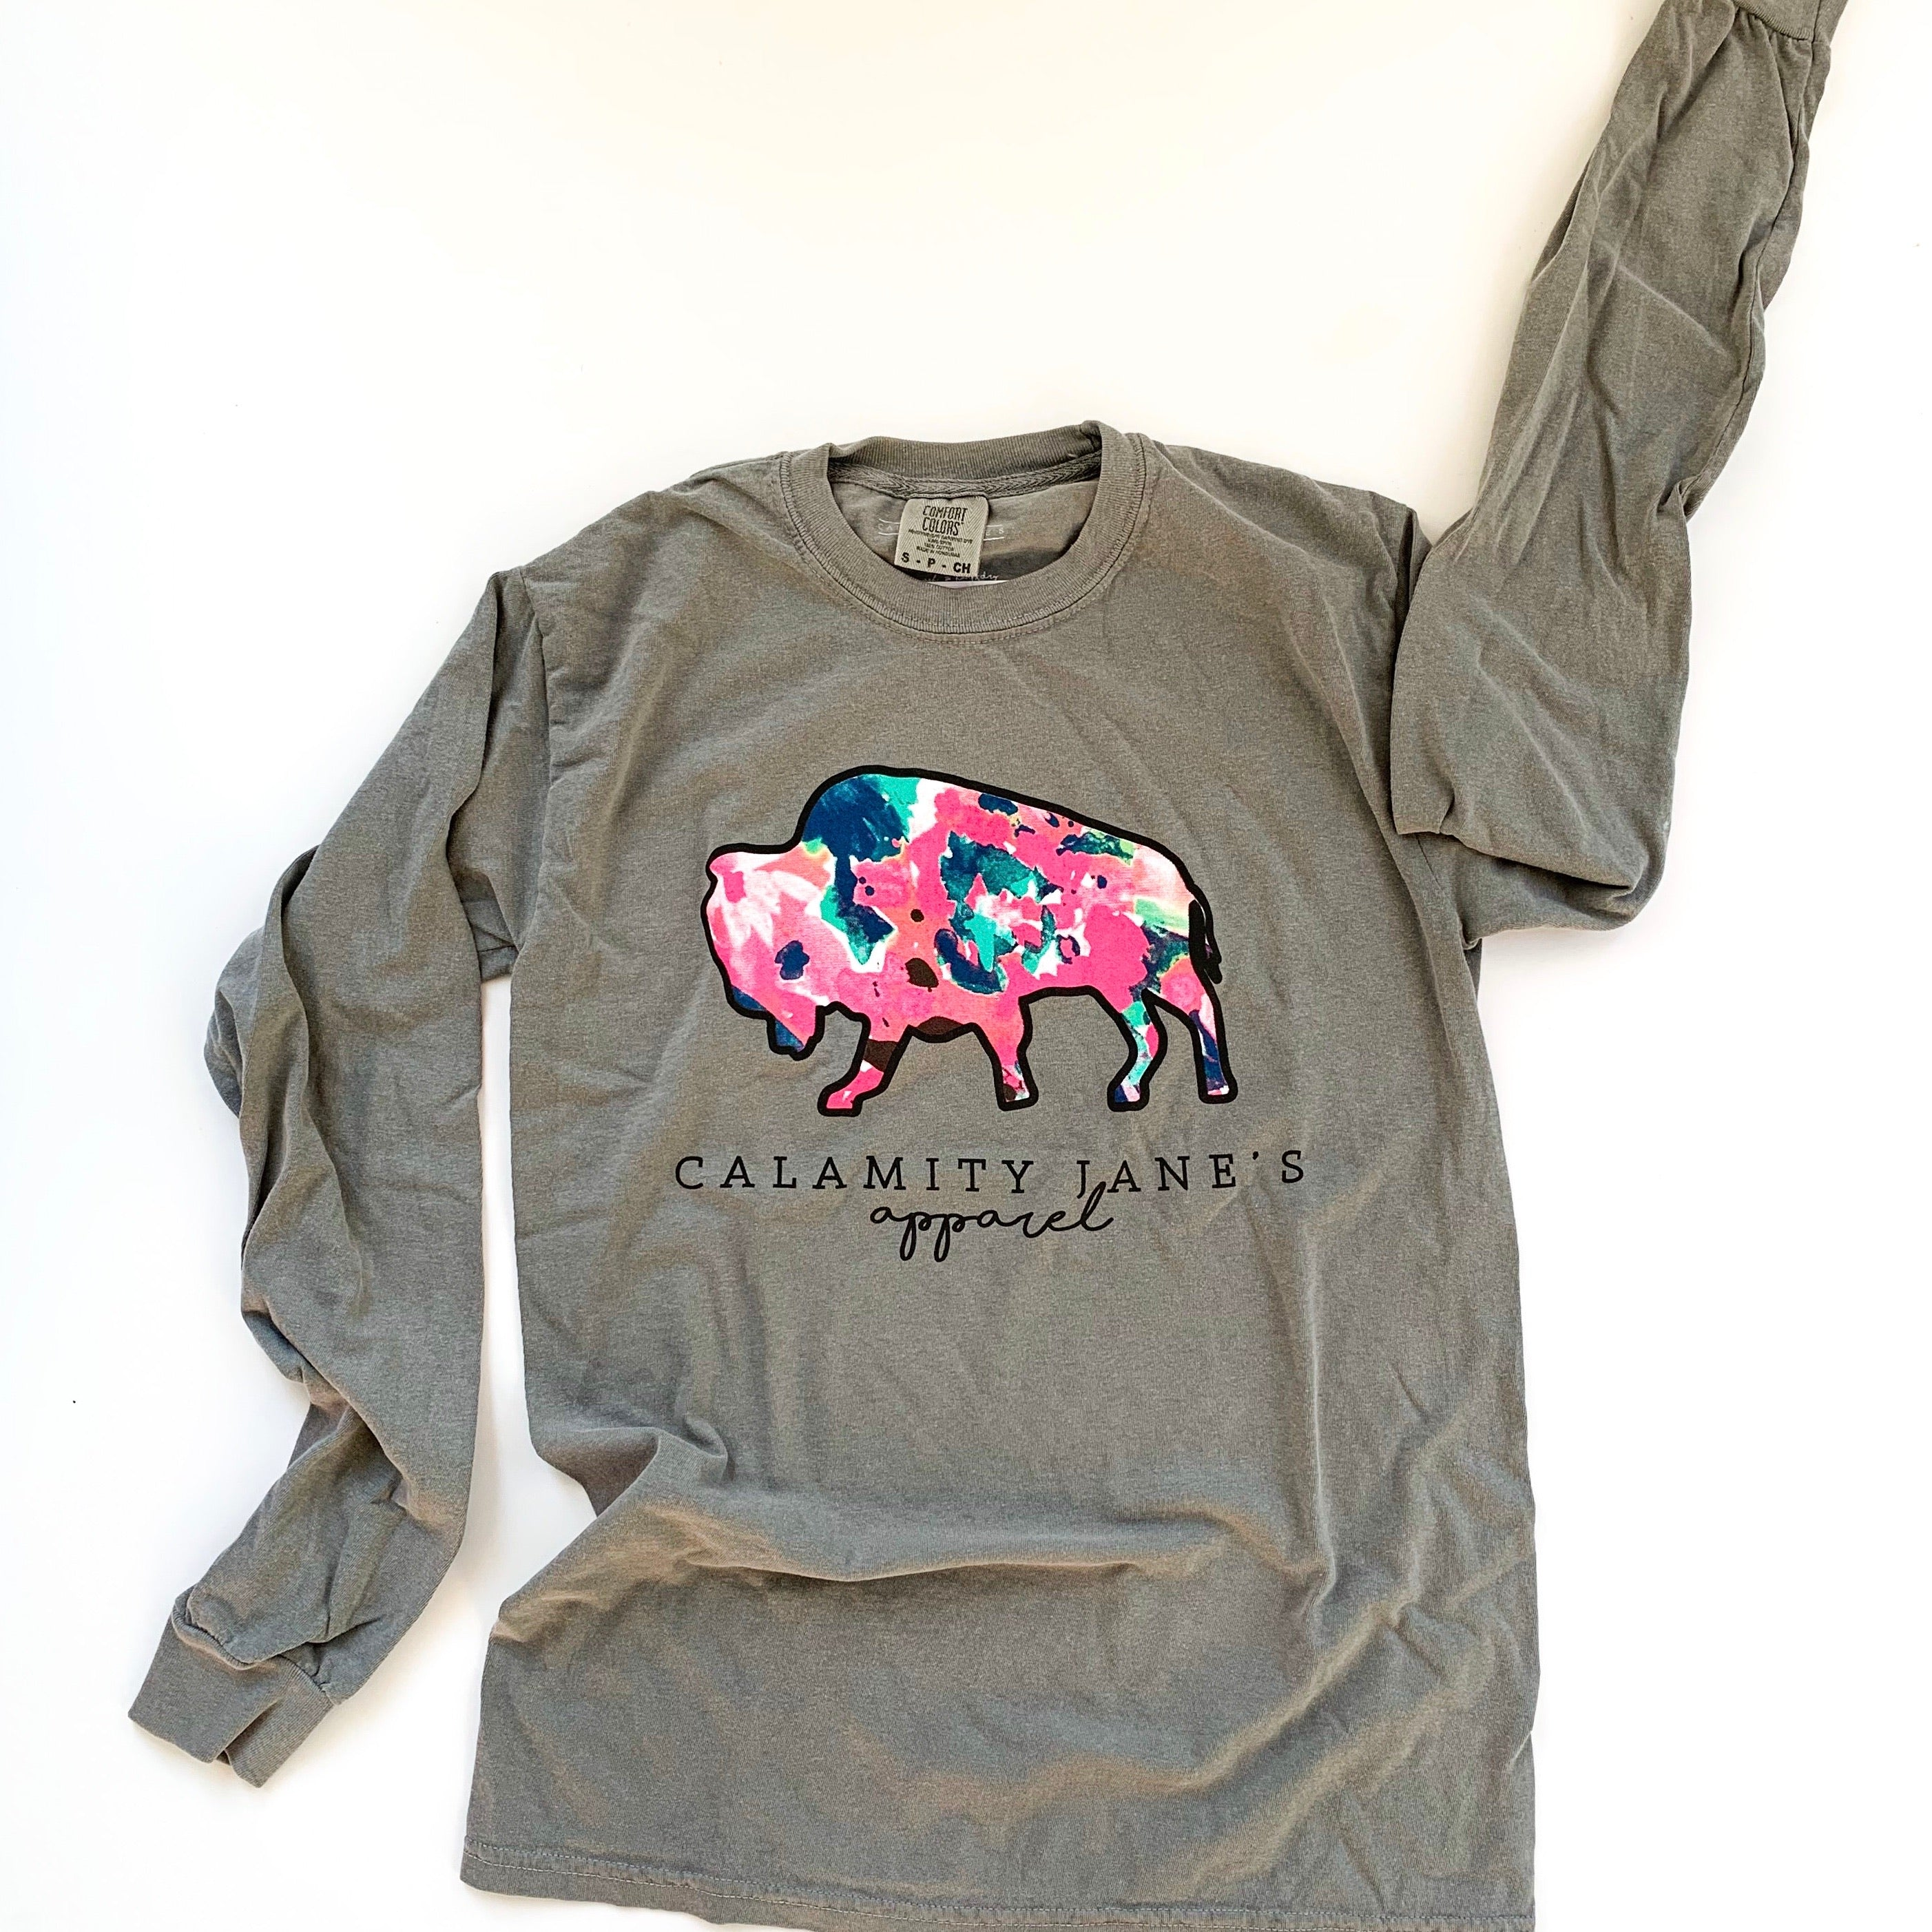 CJ LOGO: Abstract Floral - Comfort Longsleeve